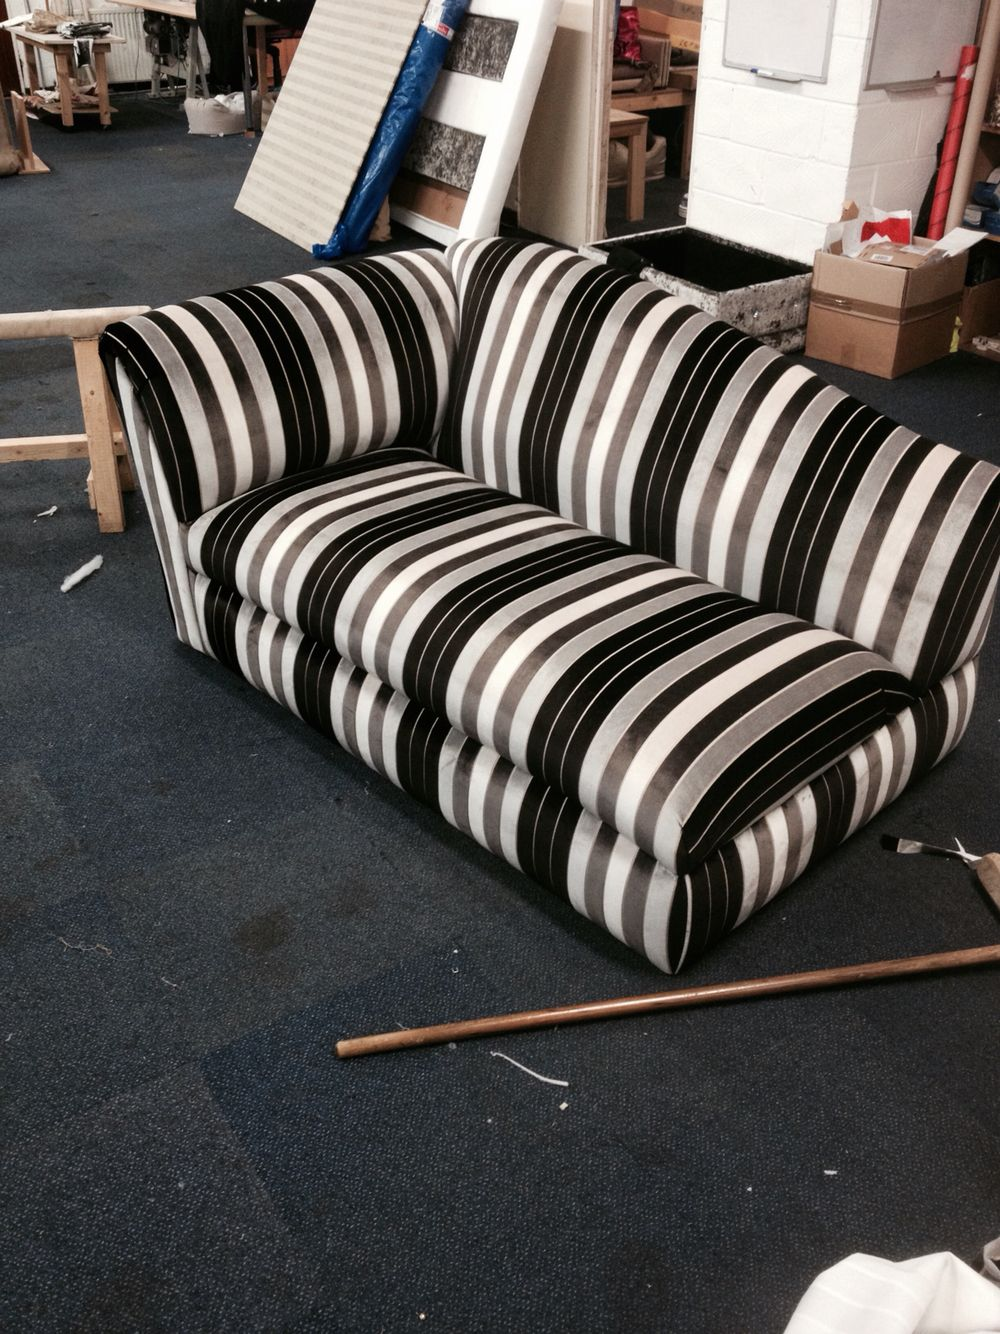 Handmade chaise lounge upholstery lounge upholstered furniture lounges lounge music